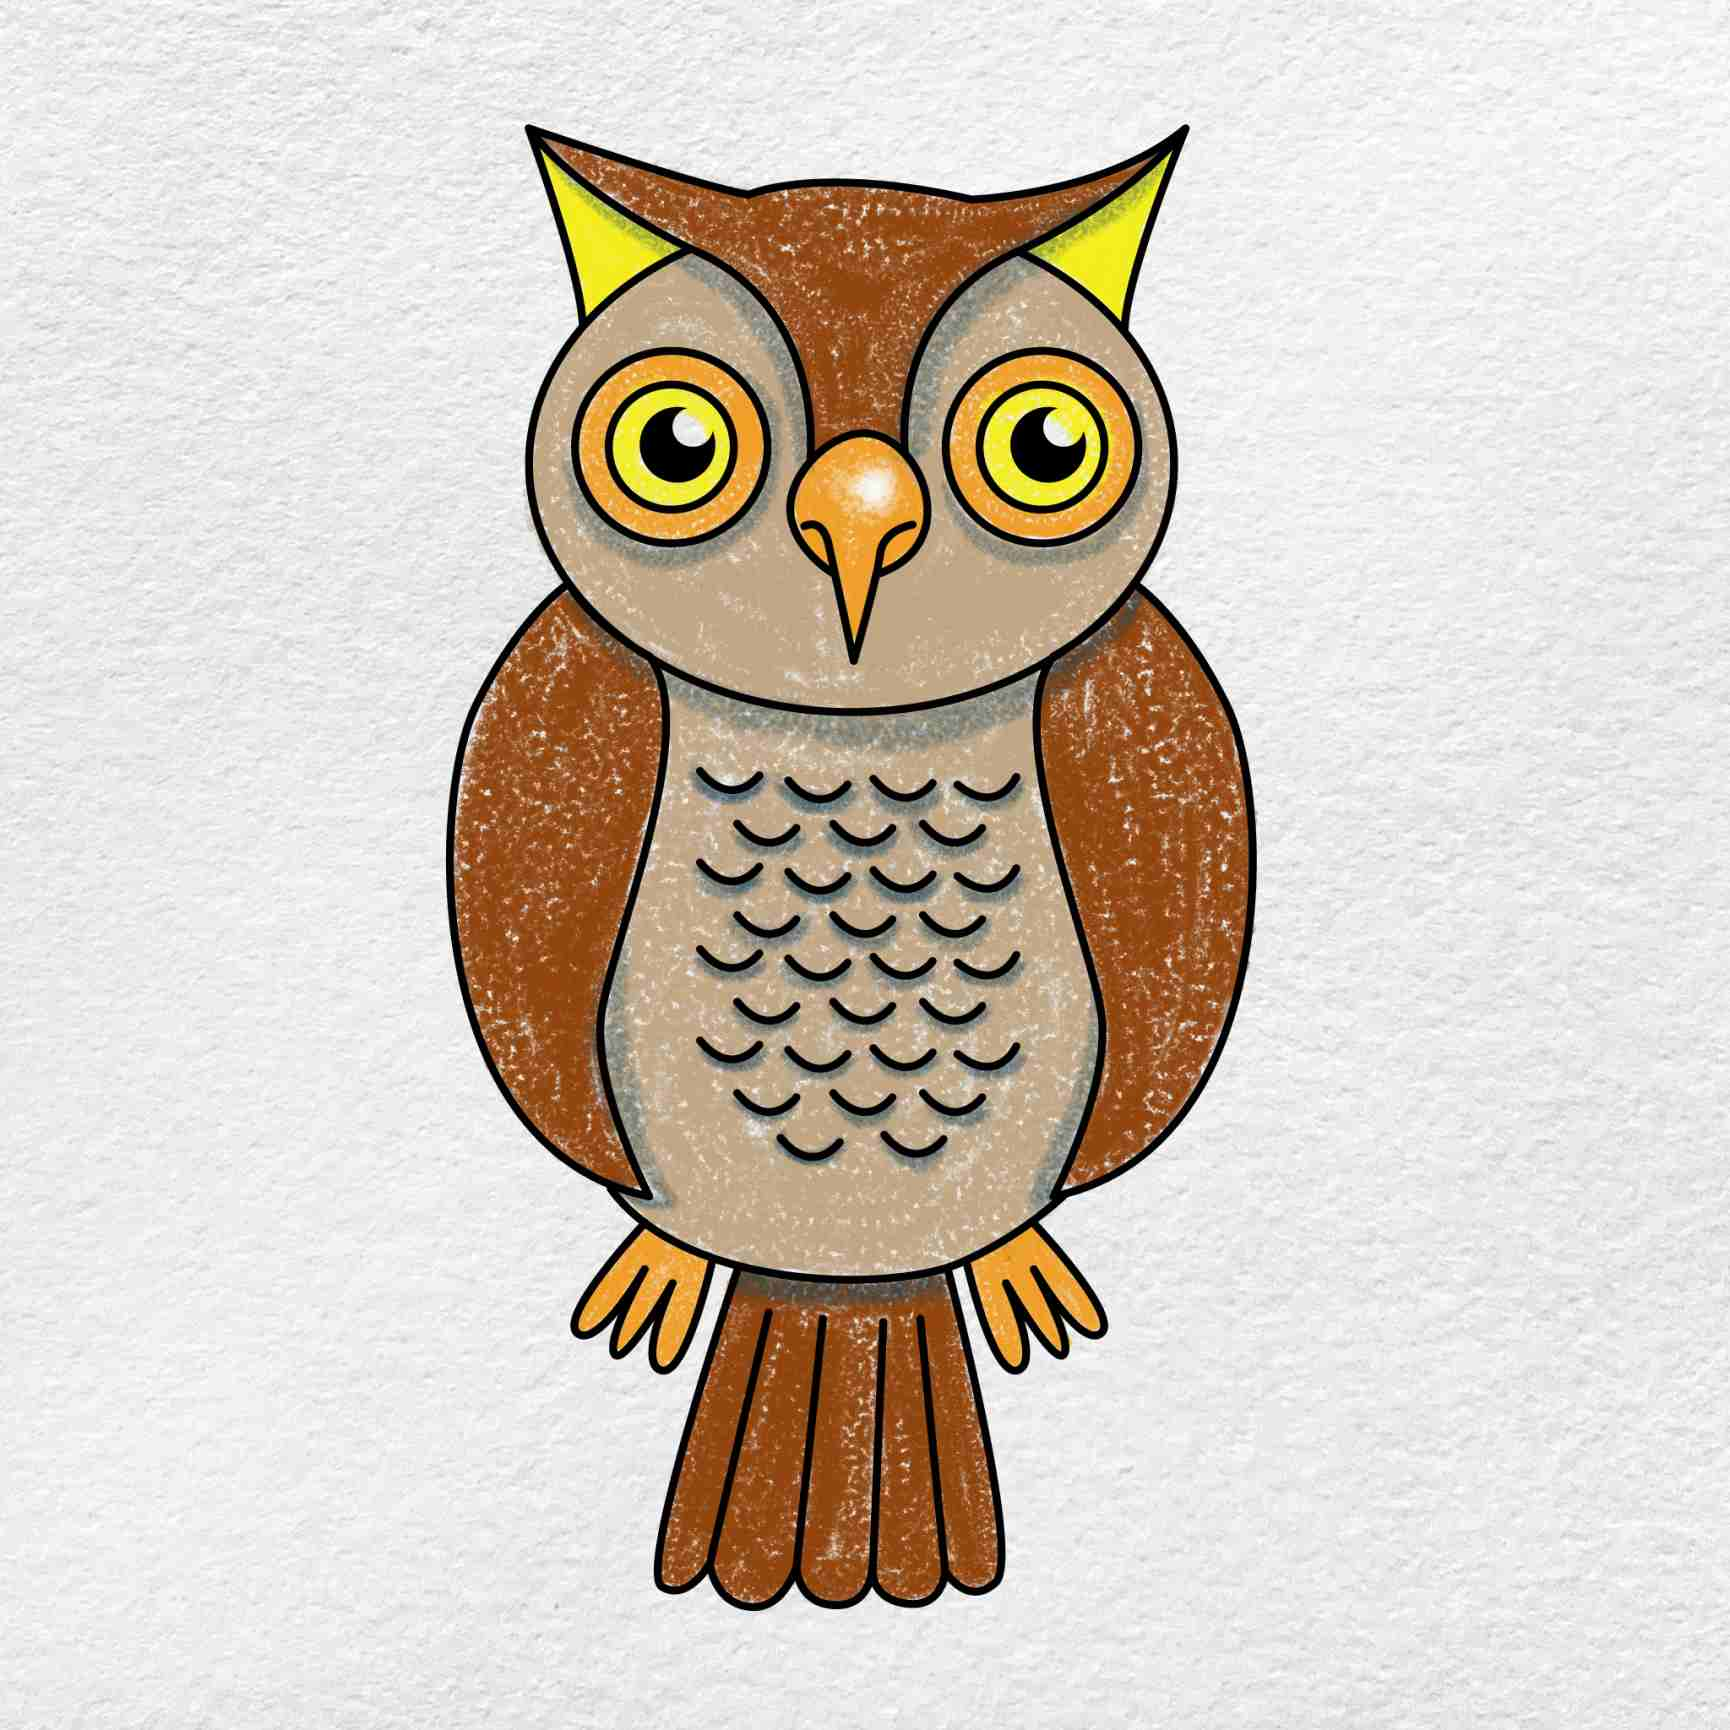 How To Draw An Owl: Step 9